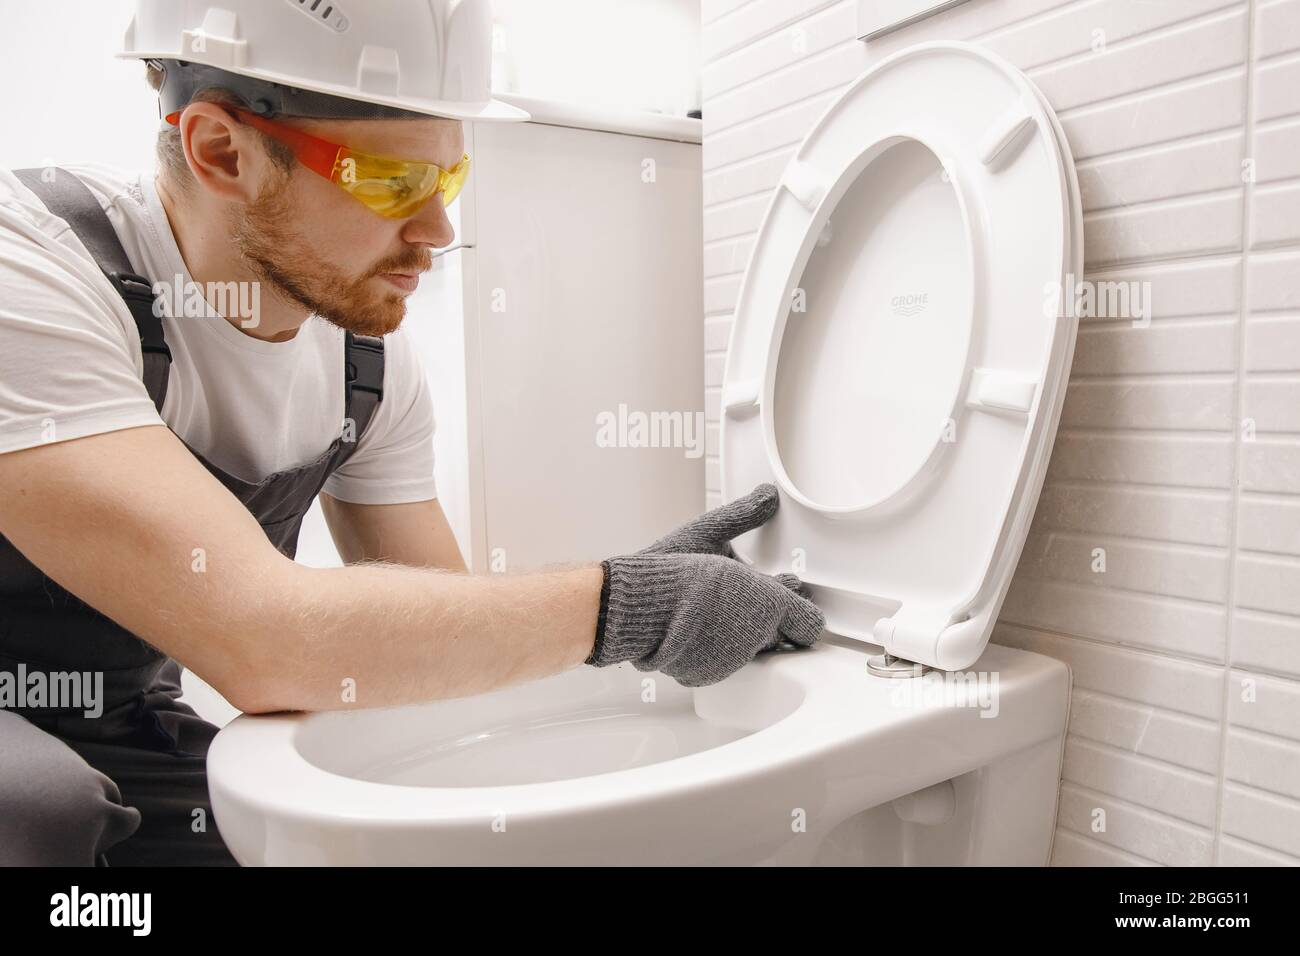 Plumber Installing Toilet Bowl In Restroom Work In Bathroom Stock Photo Alamy